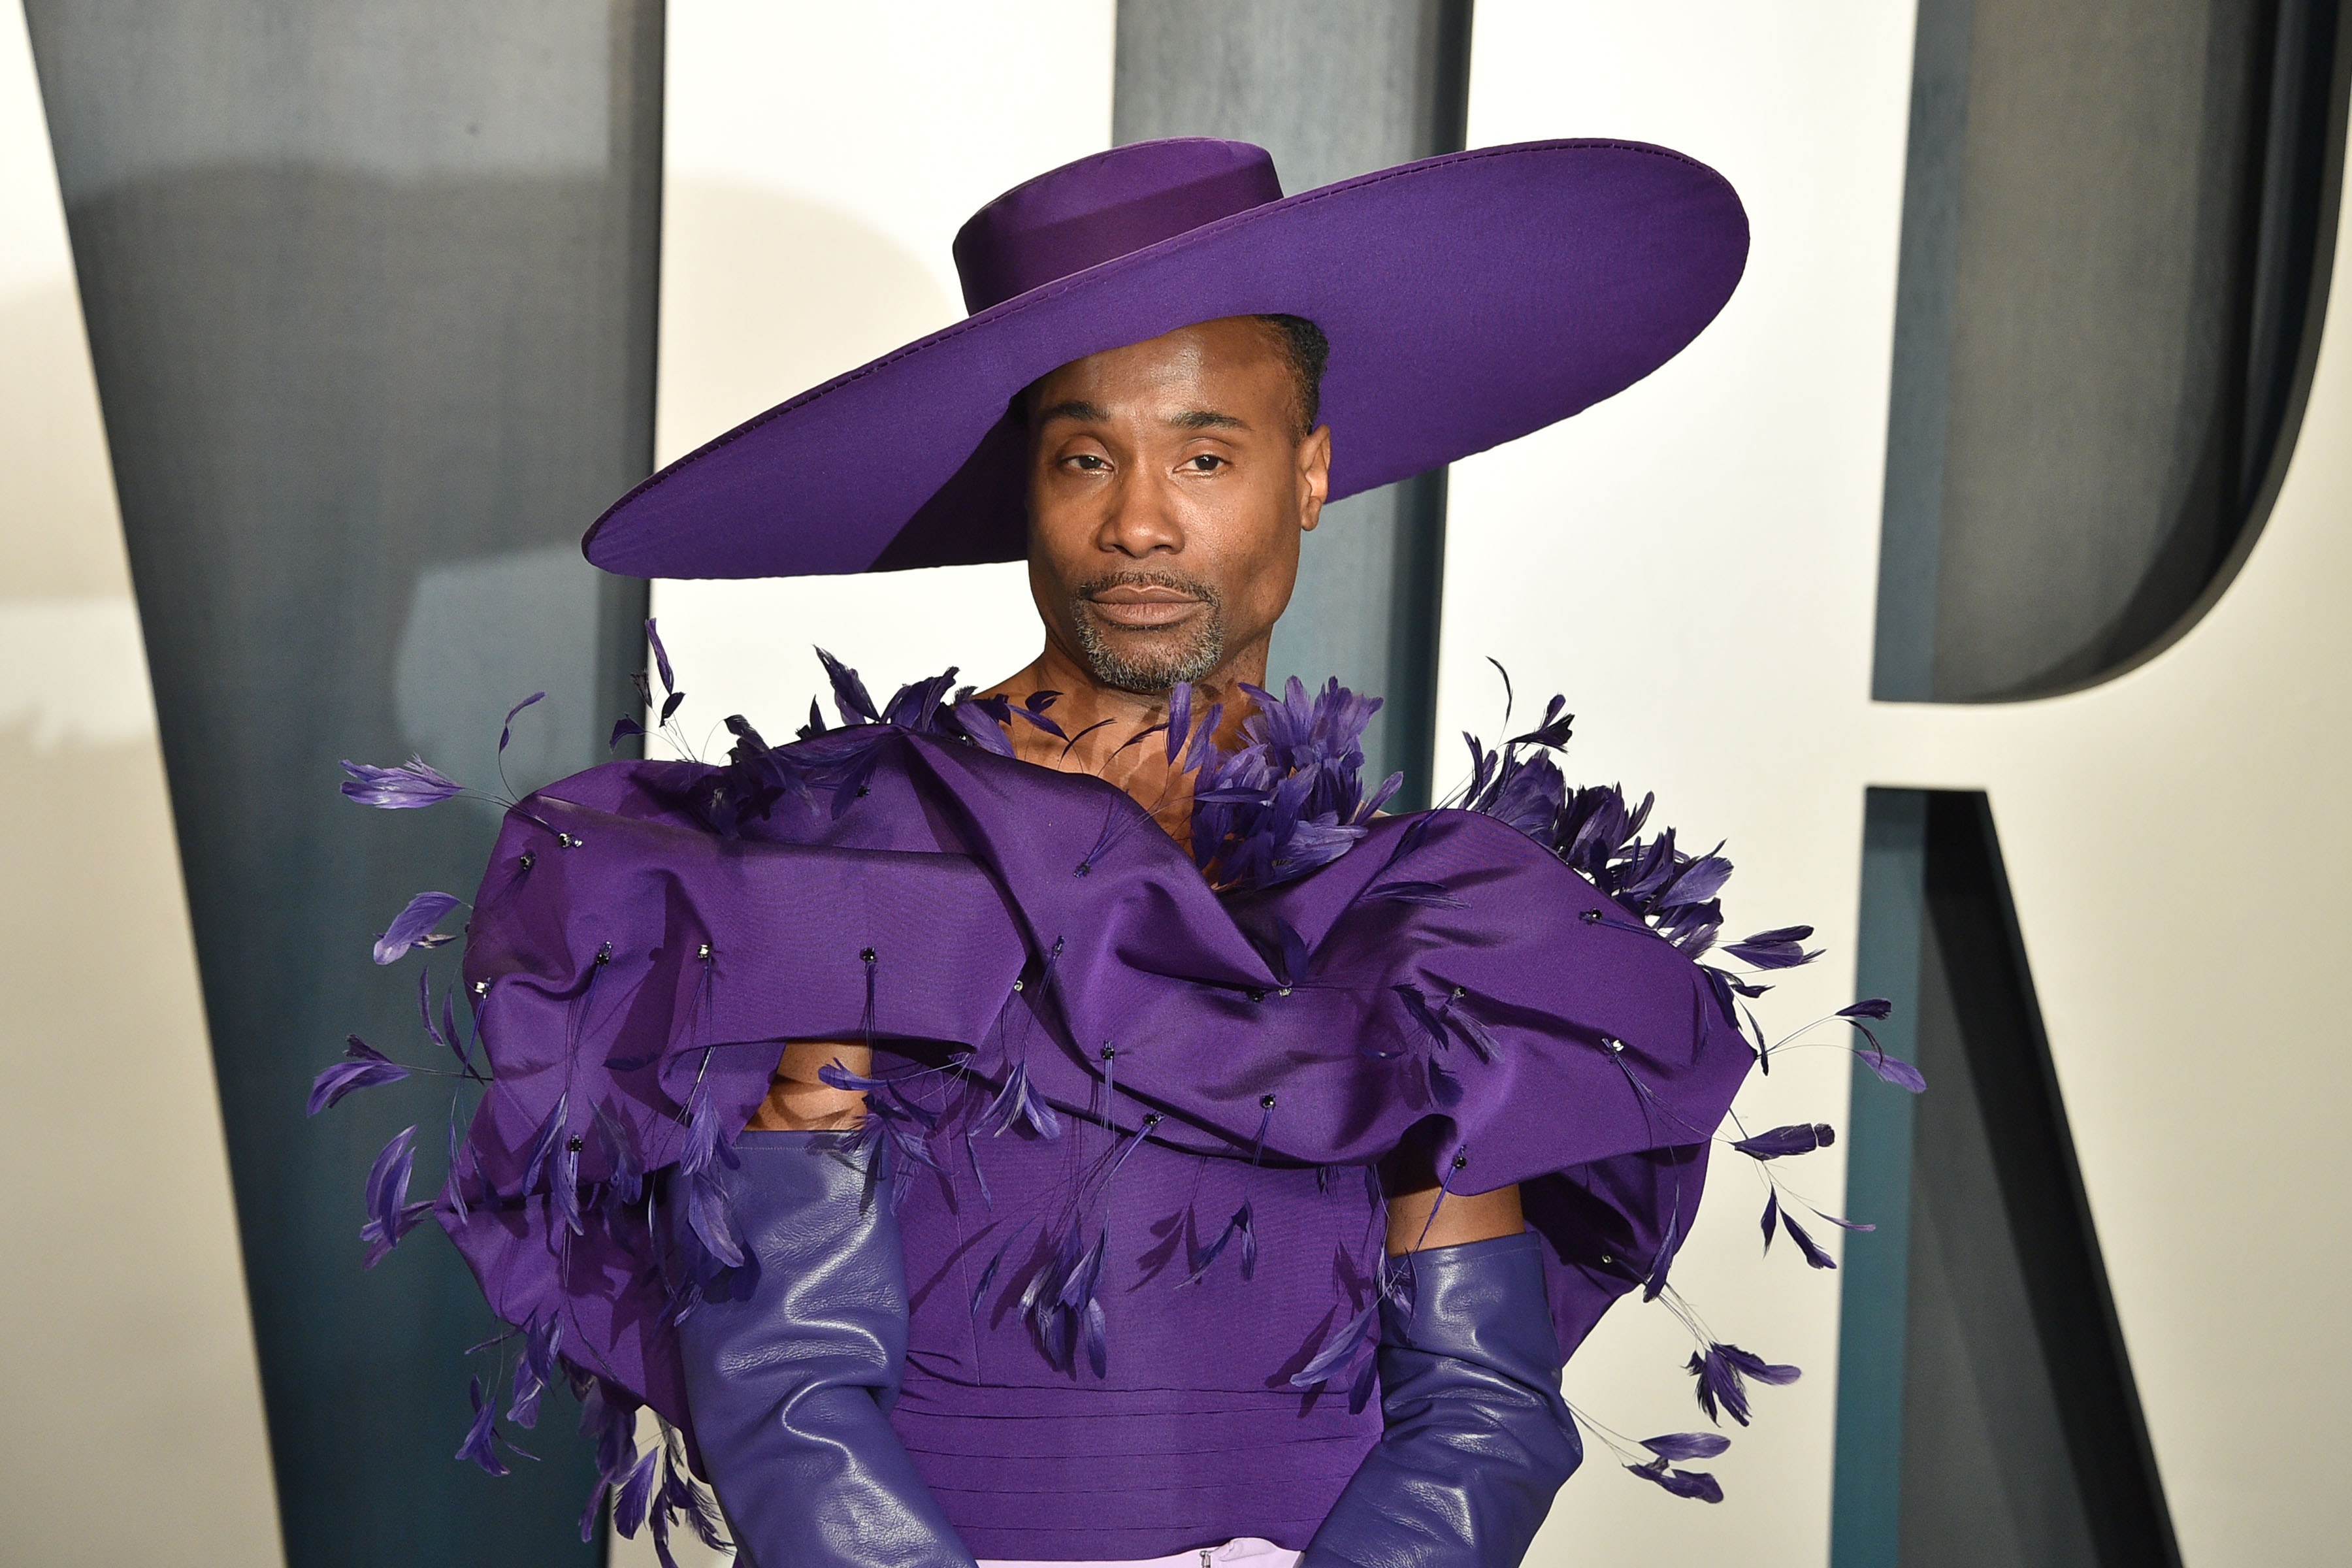 Billy Porter attends the 2020 Vanity Fair Oscar Party at Wallis Annenberg Center for the Performing Arts on February 09, 2020 in Beverly Hills, California. (Photo by David Crotty/Patrick McMullan via Getty Images)